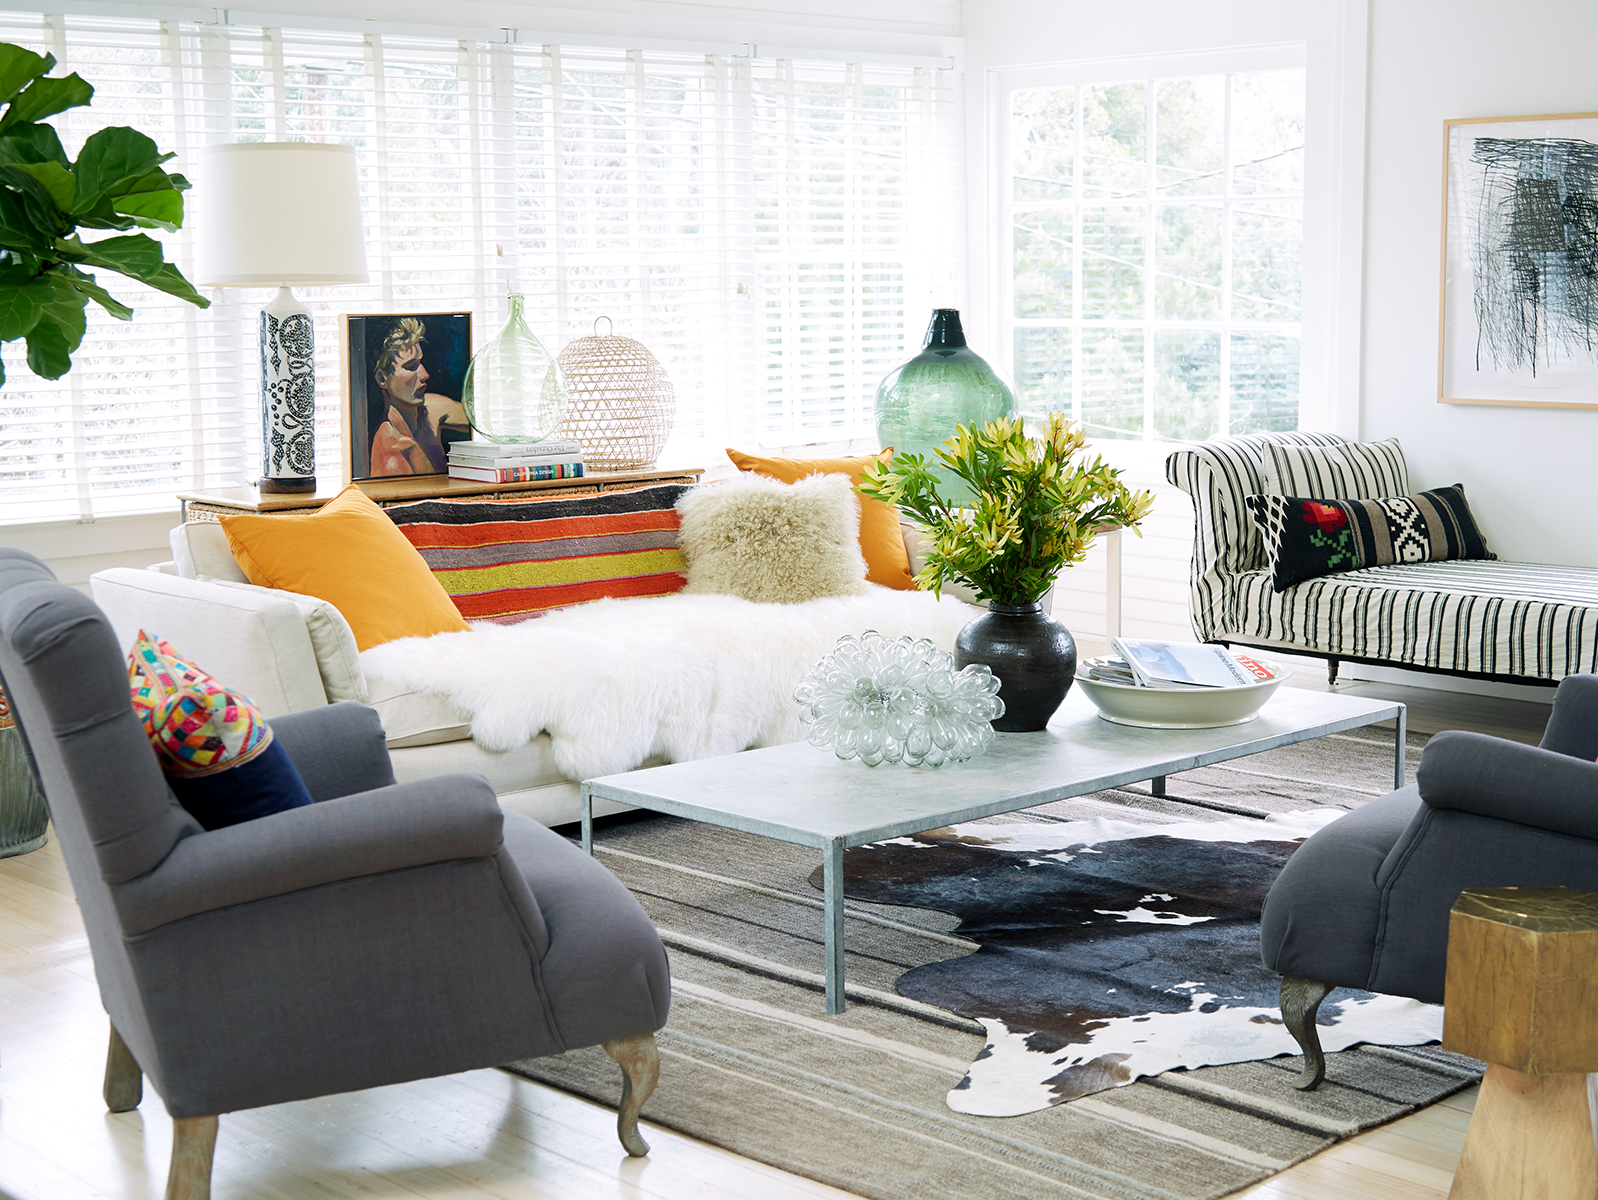 Ideas To Steal For Your Apartment: Ideas For Apartments